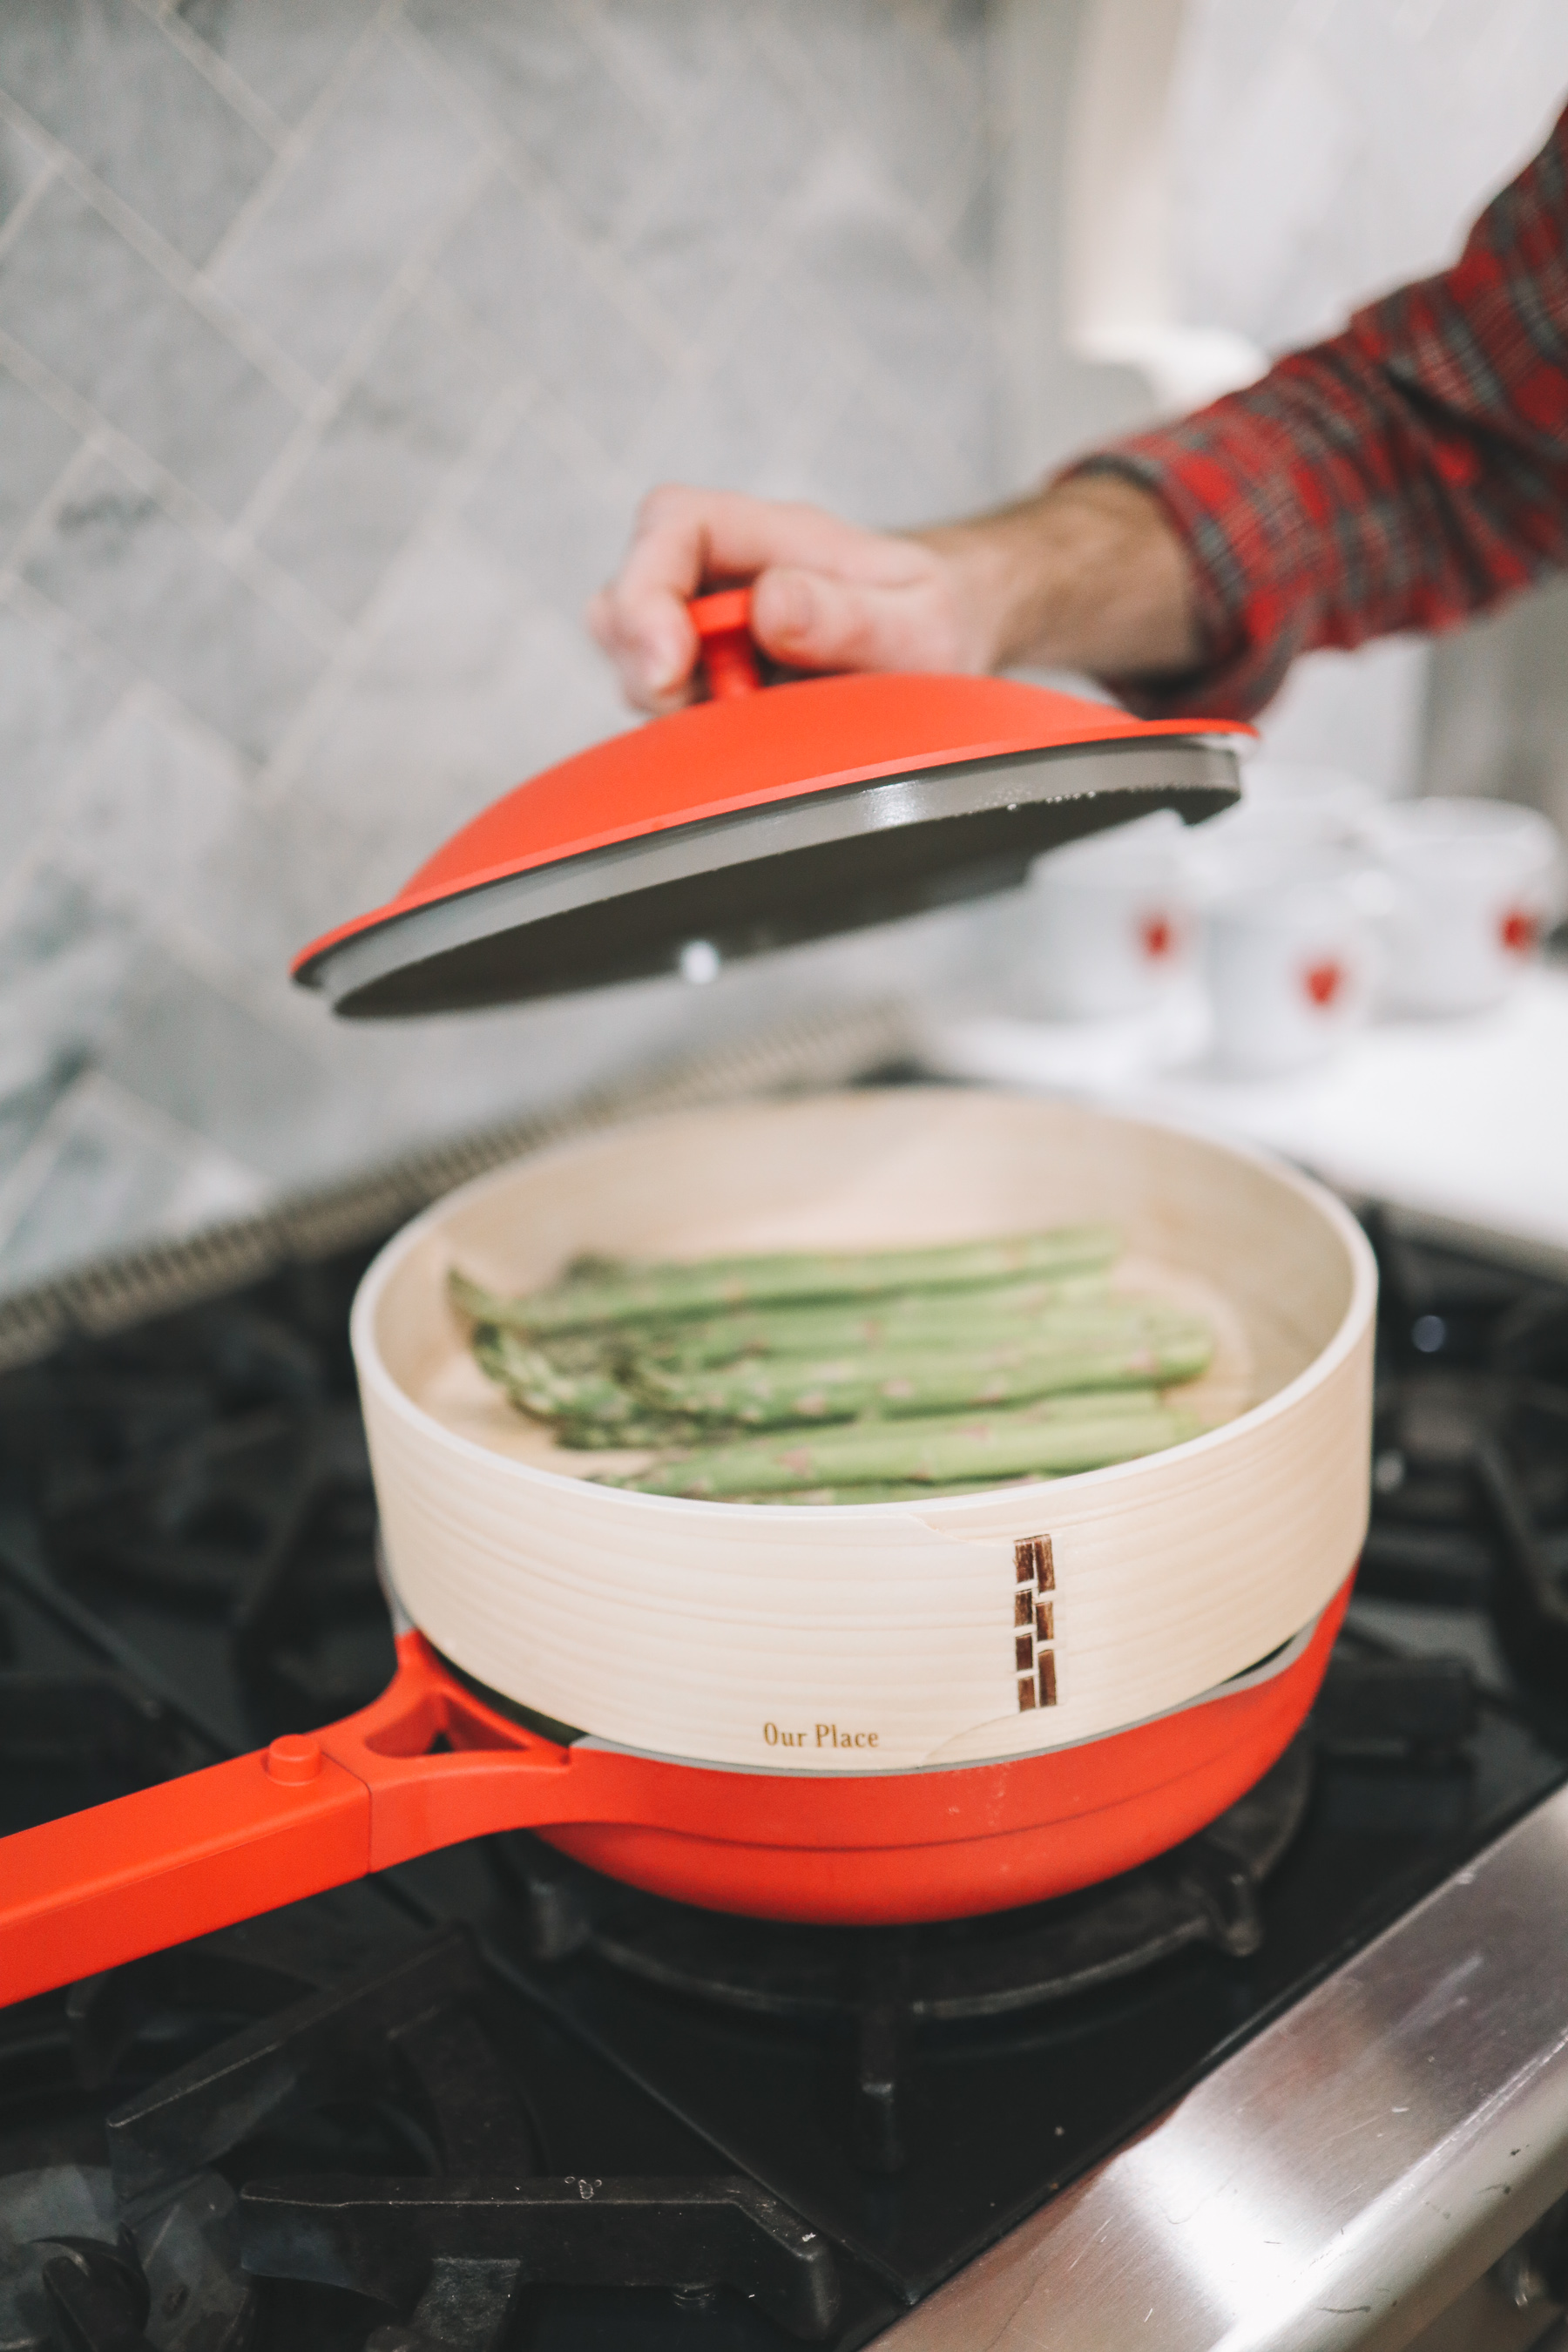 how to steam in the Always Pan